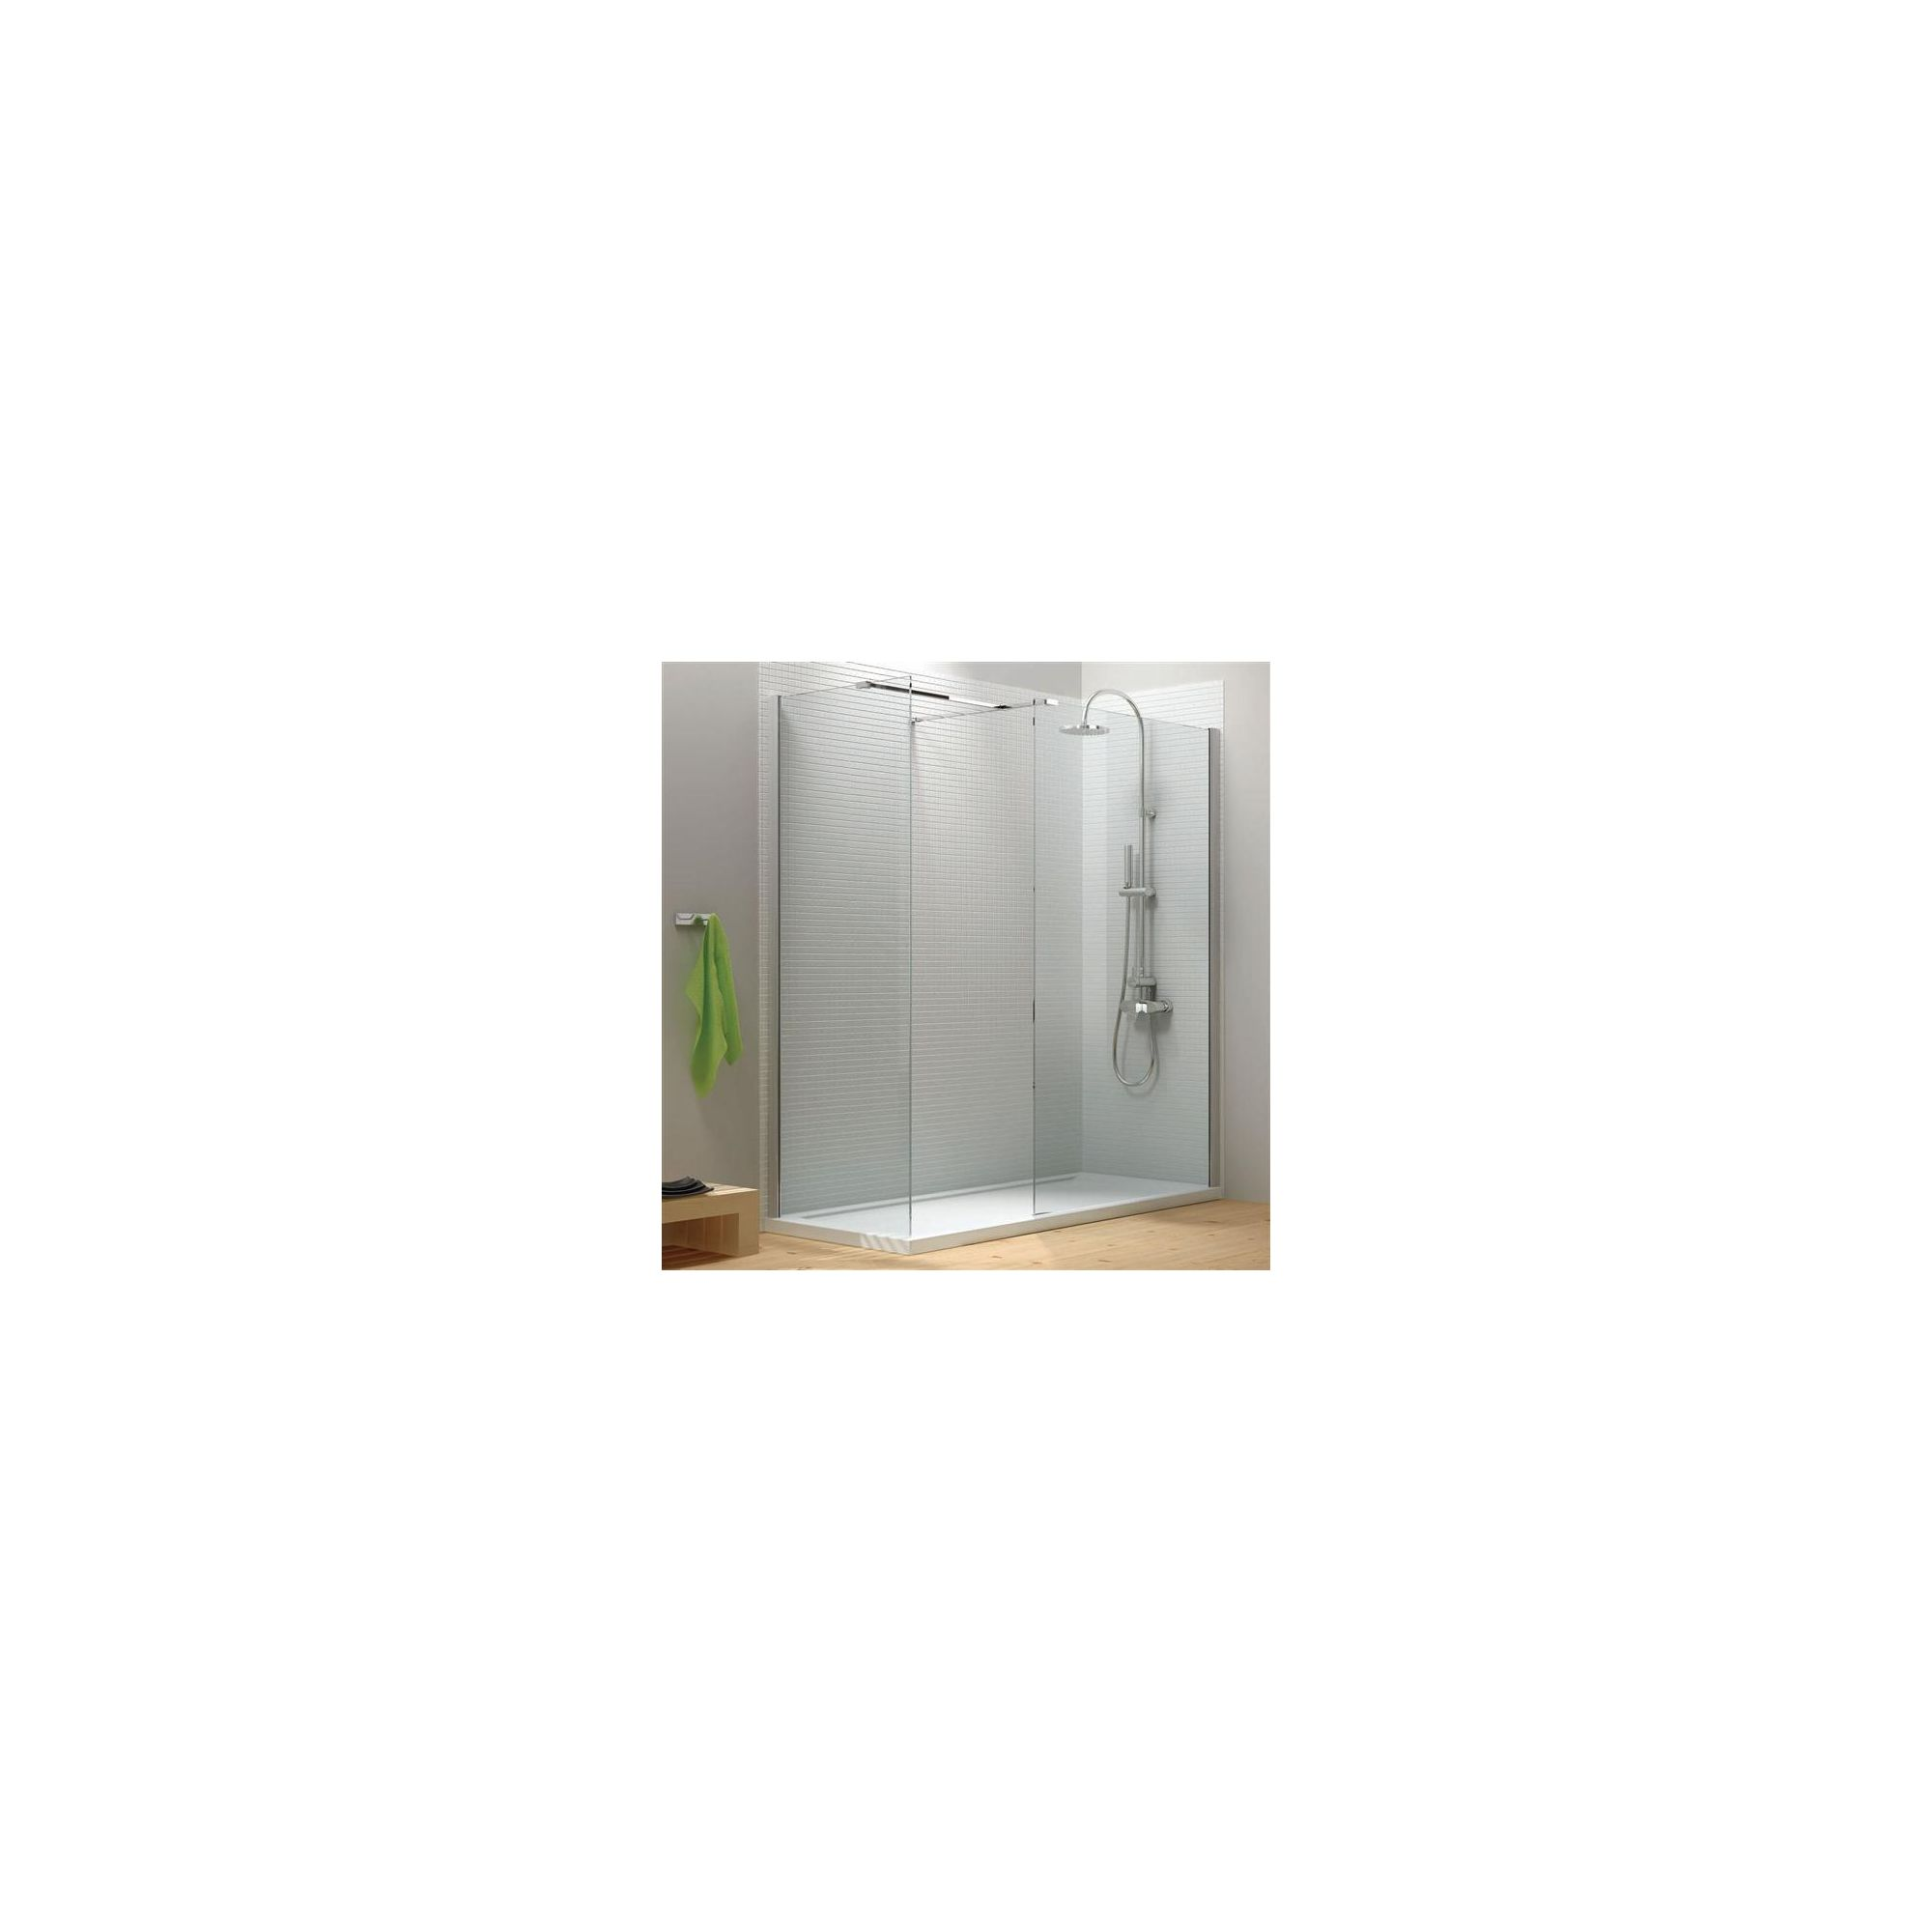 Merlyn Vivid Eight Walk-In Shower Enclosure, 1700mm x 800mm, Low Profile Tray, 8mm Glass at Tesco Direct